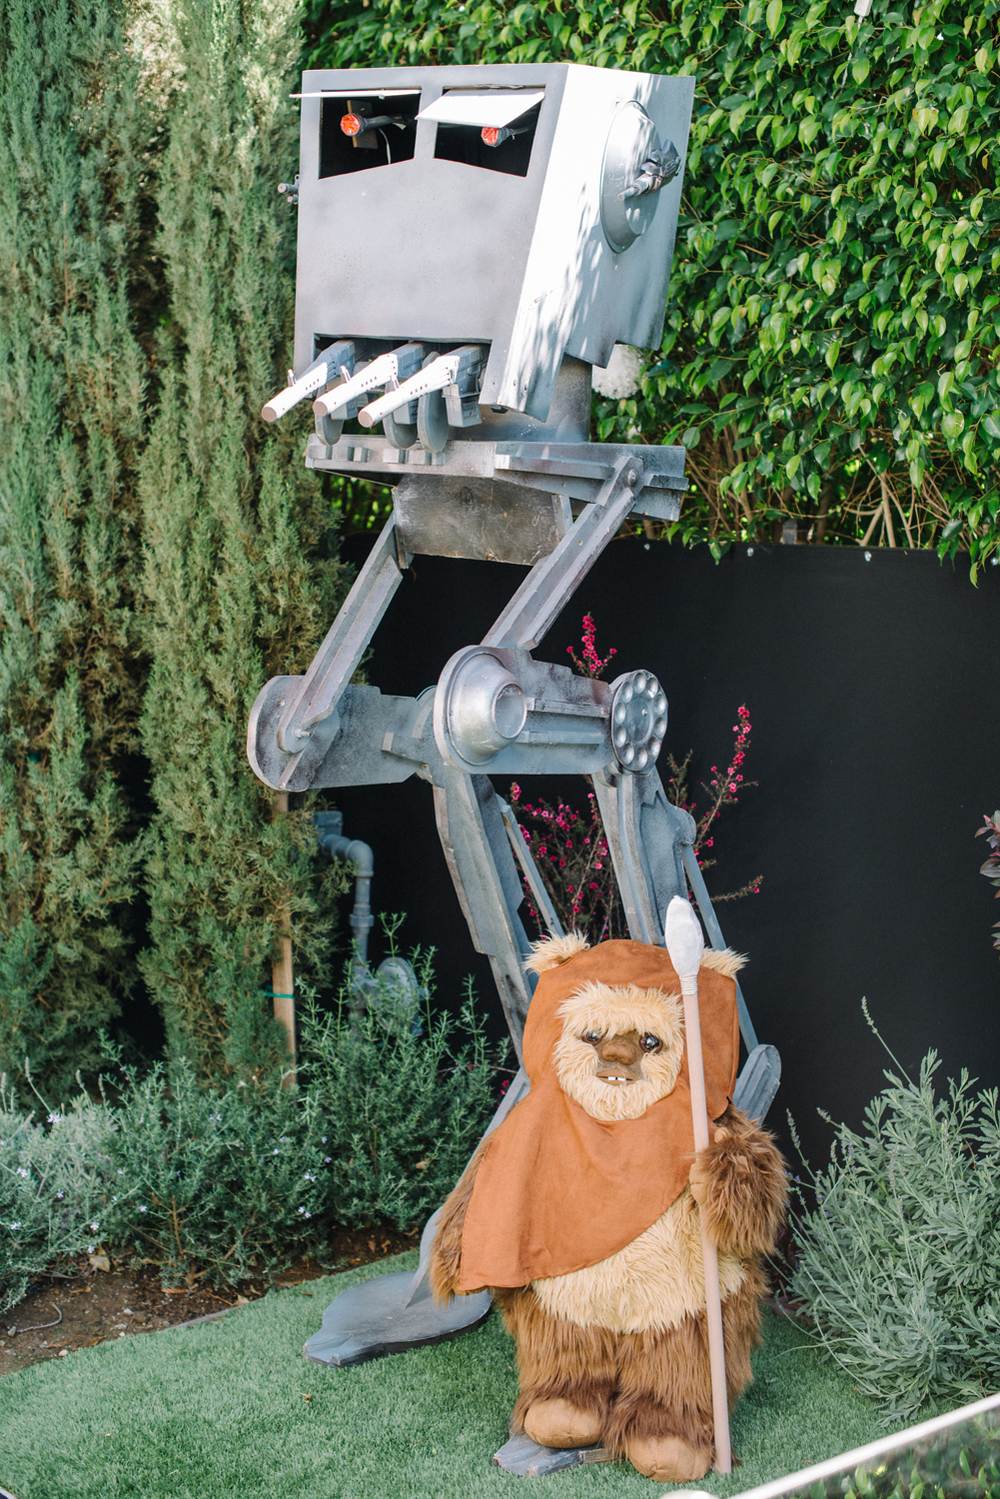 tarynco-events-starwars-themed-kids-birthday-party-ewok.jpg